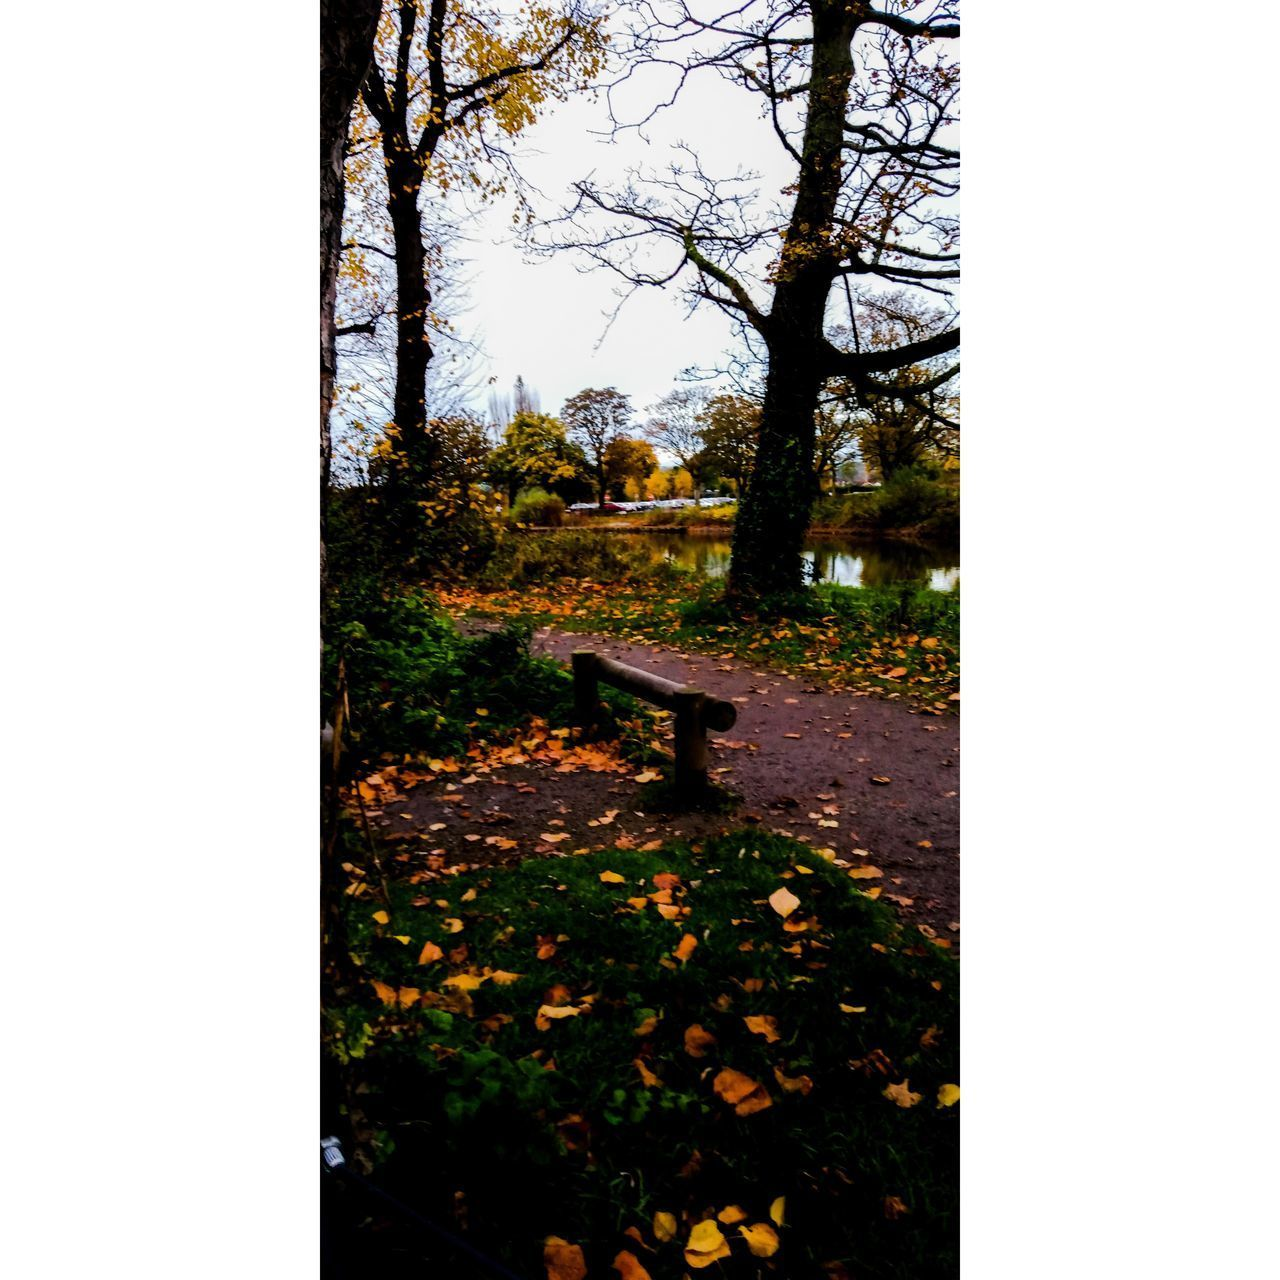 plant, tree, nature, growth, no people, beauty in nature, sky, tranquility, day, park, tranquil scene, flower, land, outdoors, field, flowering plant, landscape, autumn, tree trunk, scenics - nature, change